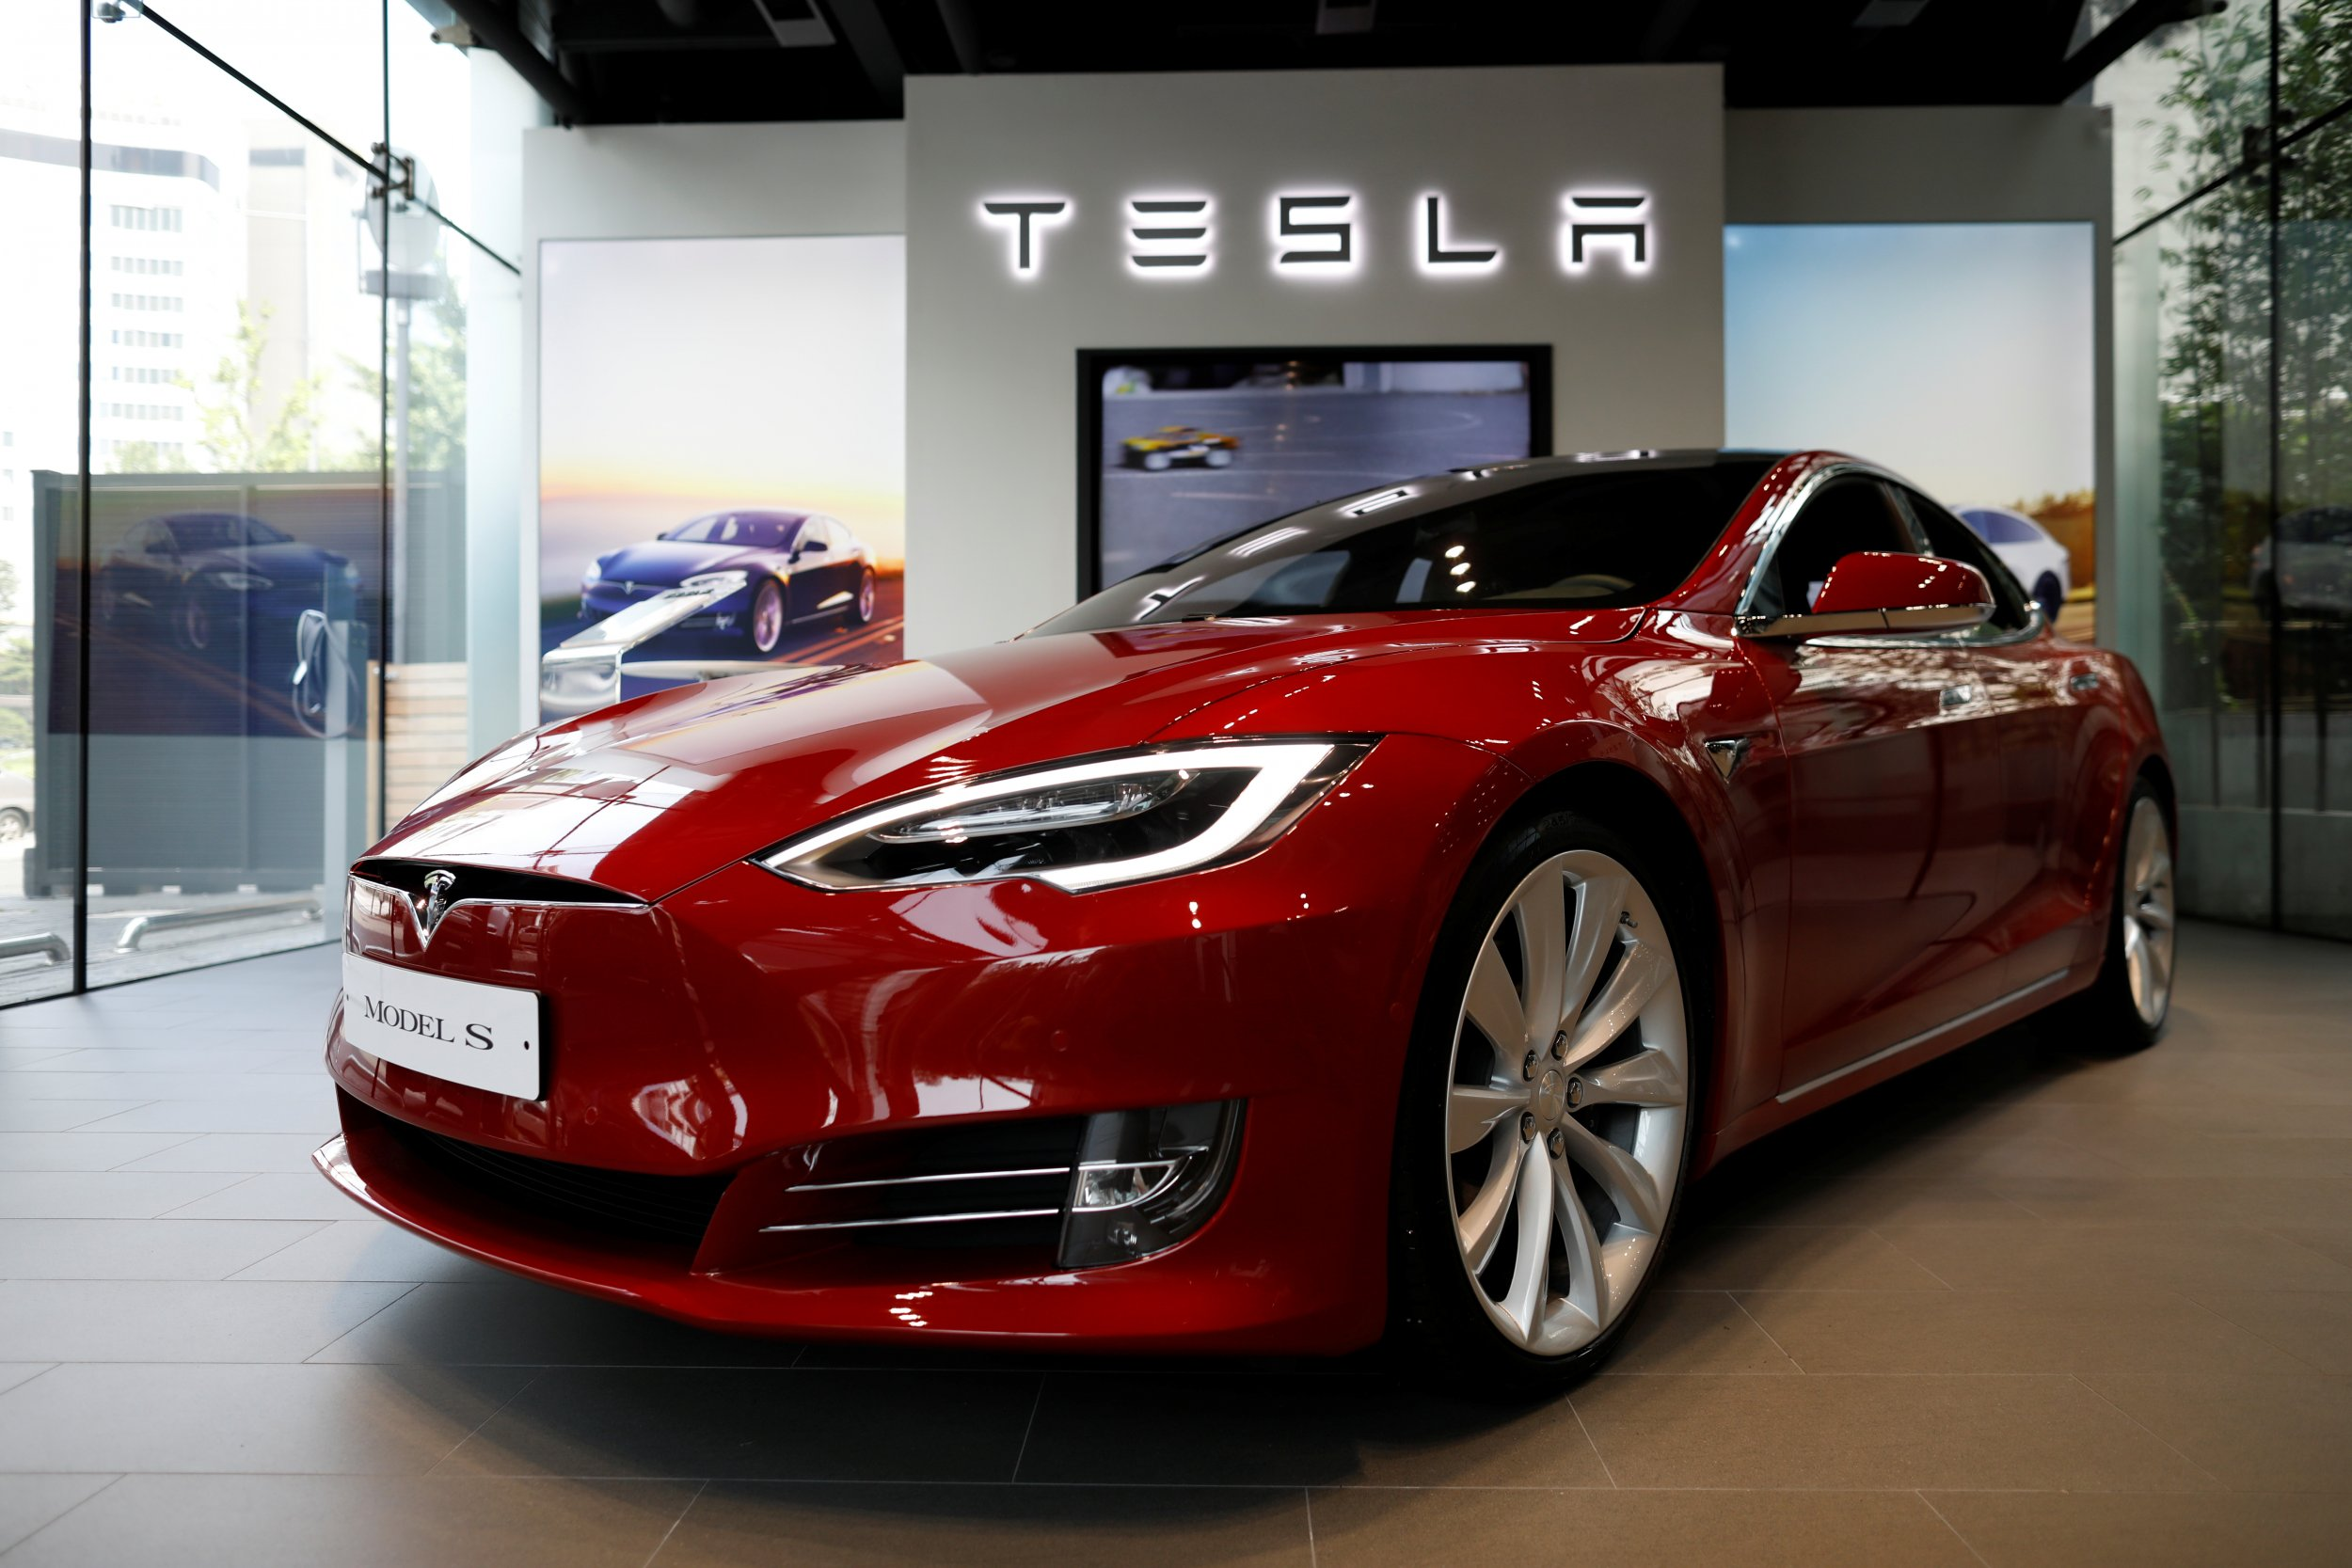 Tesla Model S Crash That Killed Two Teens In Florida Is